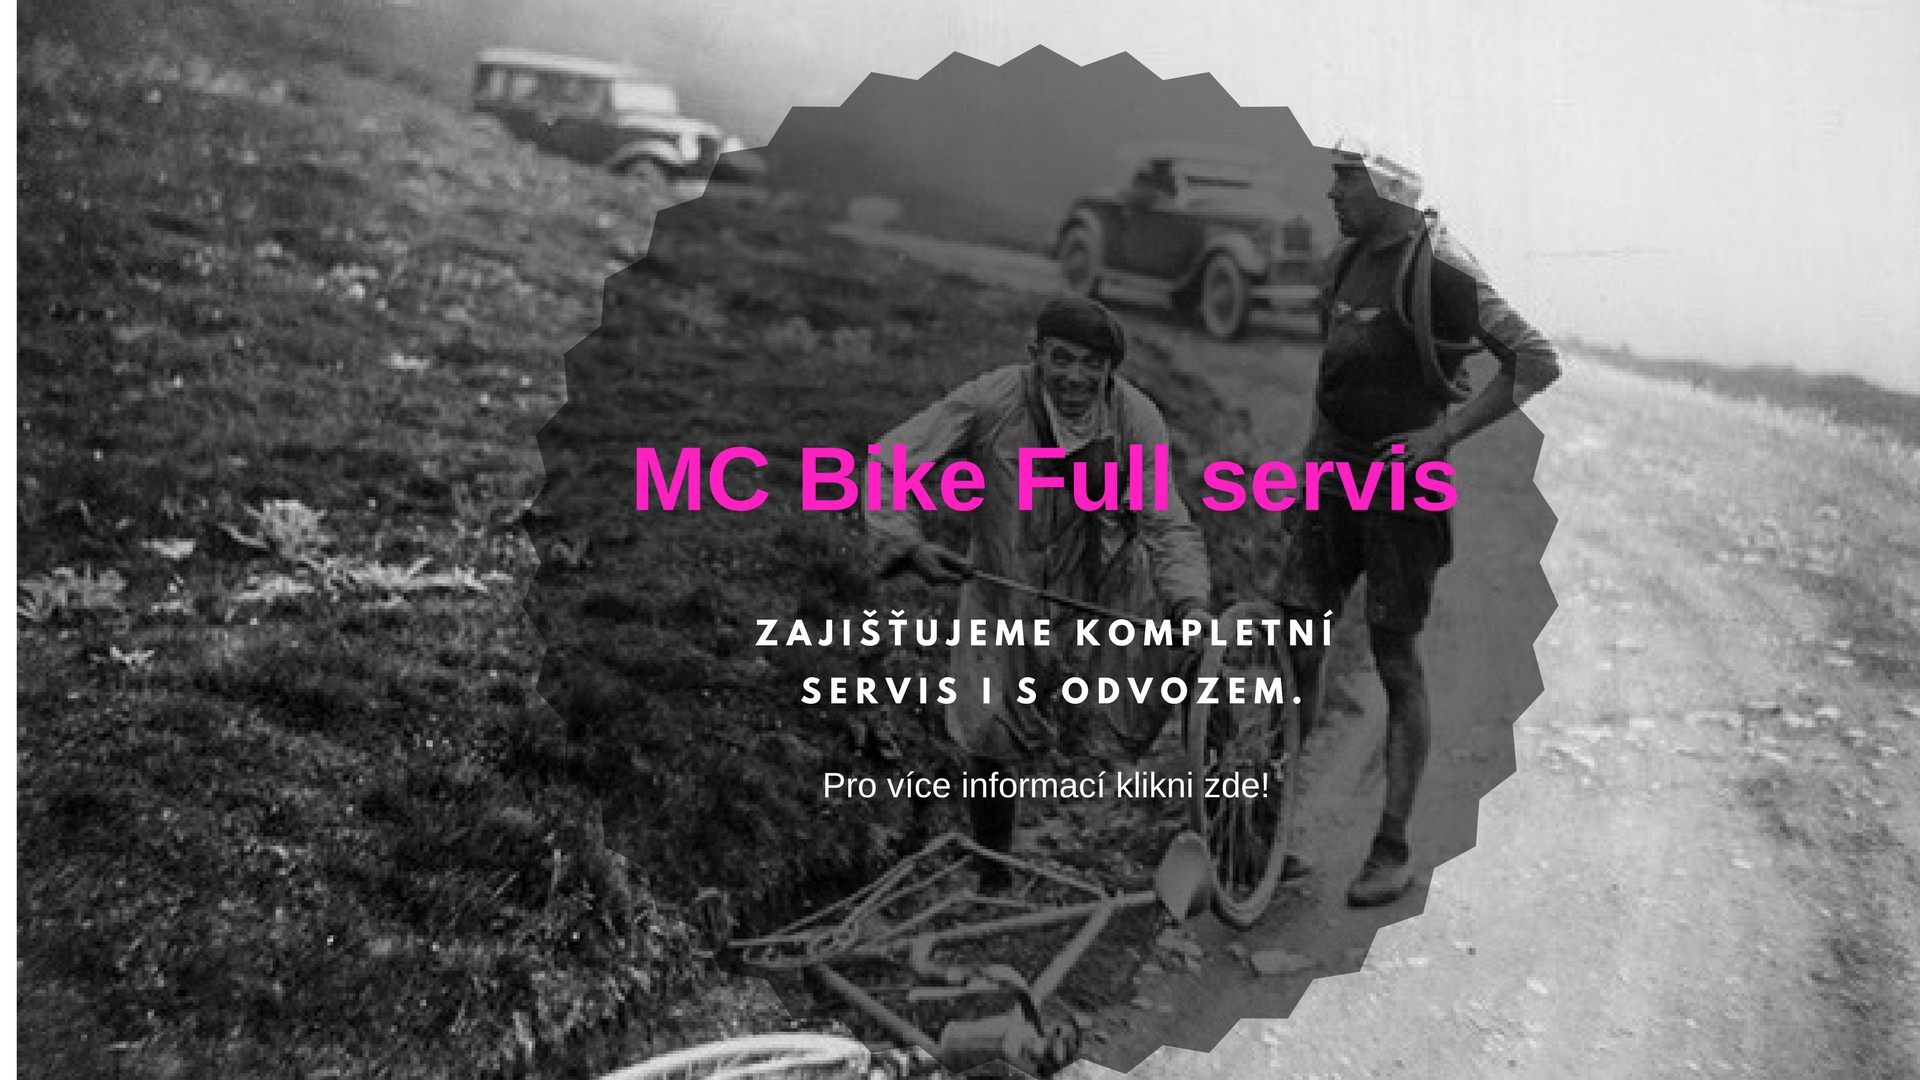 MC Bike Full servis Special Herbs